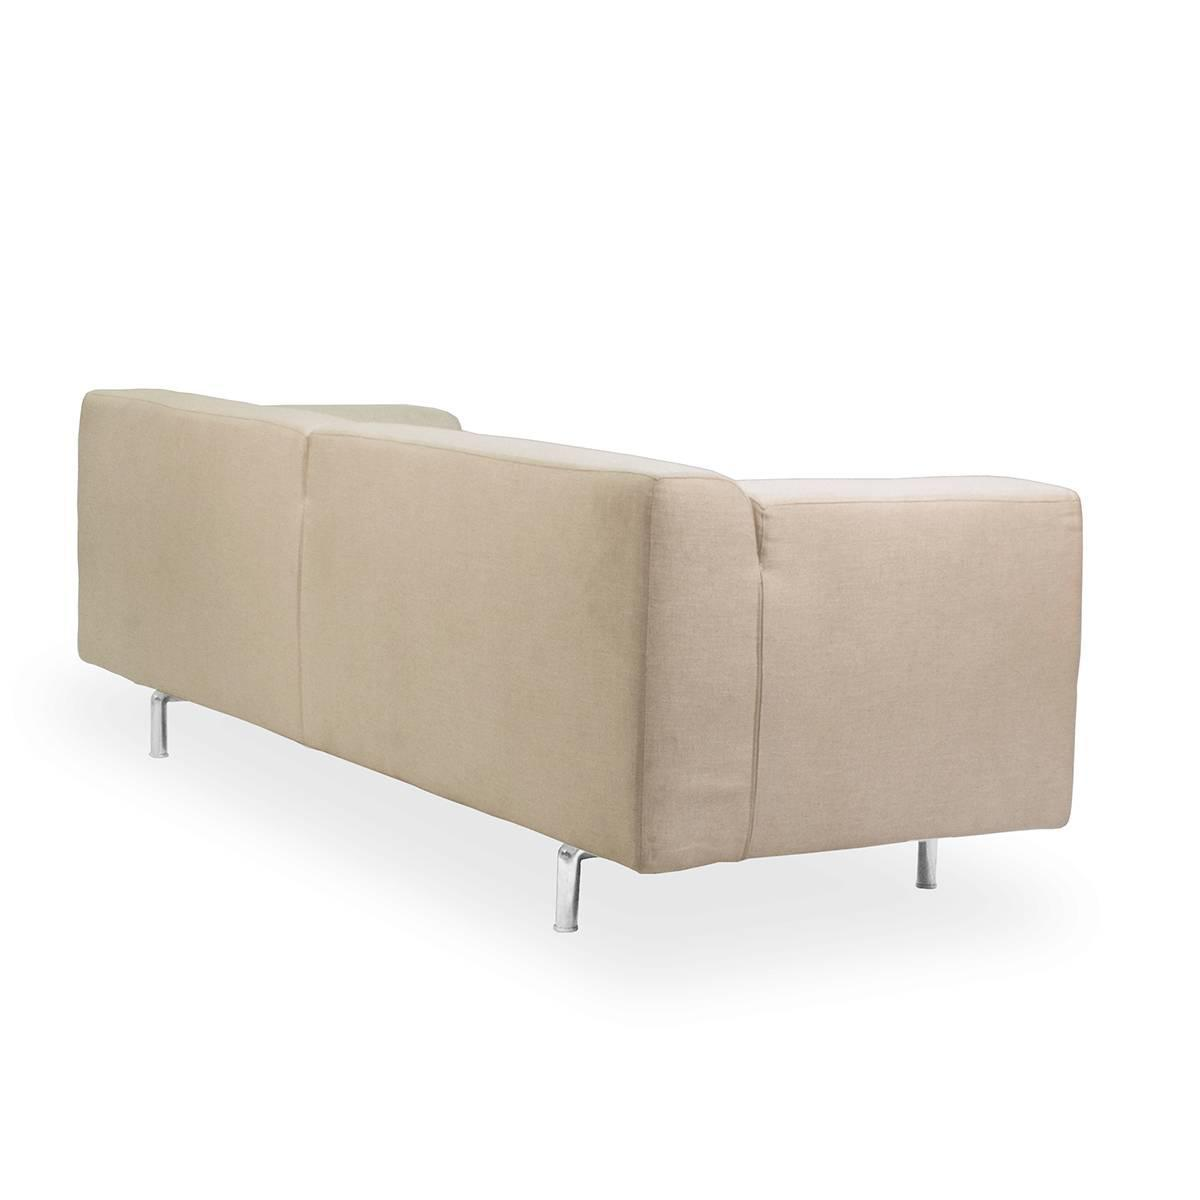 Seater Leather Sofa further Standard Sofa Size Dimensions further